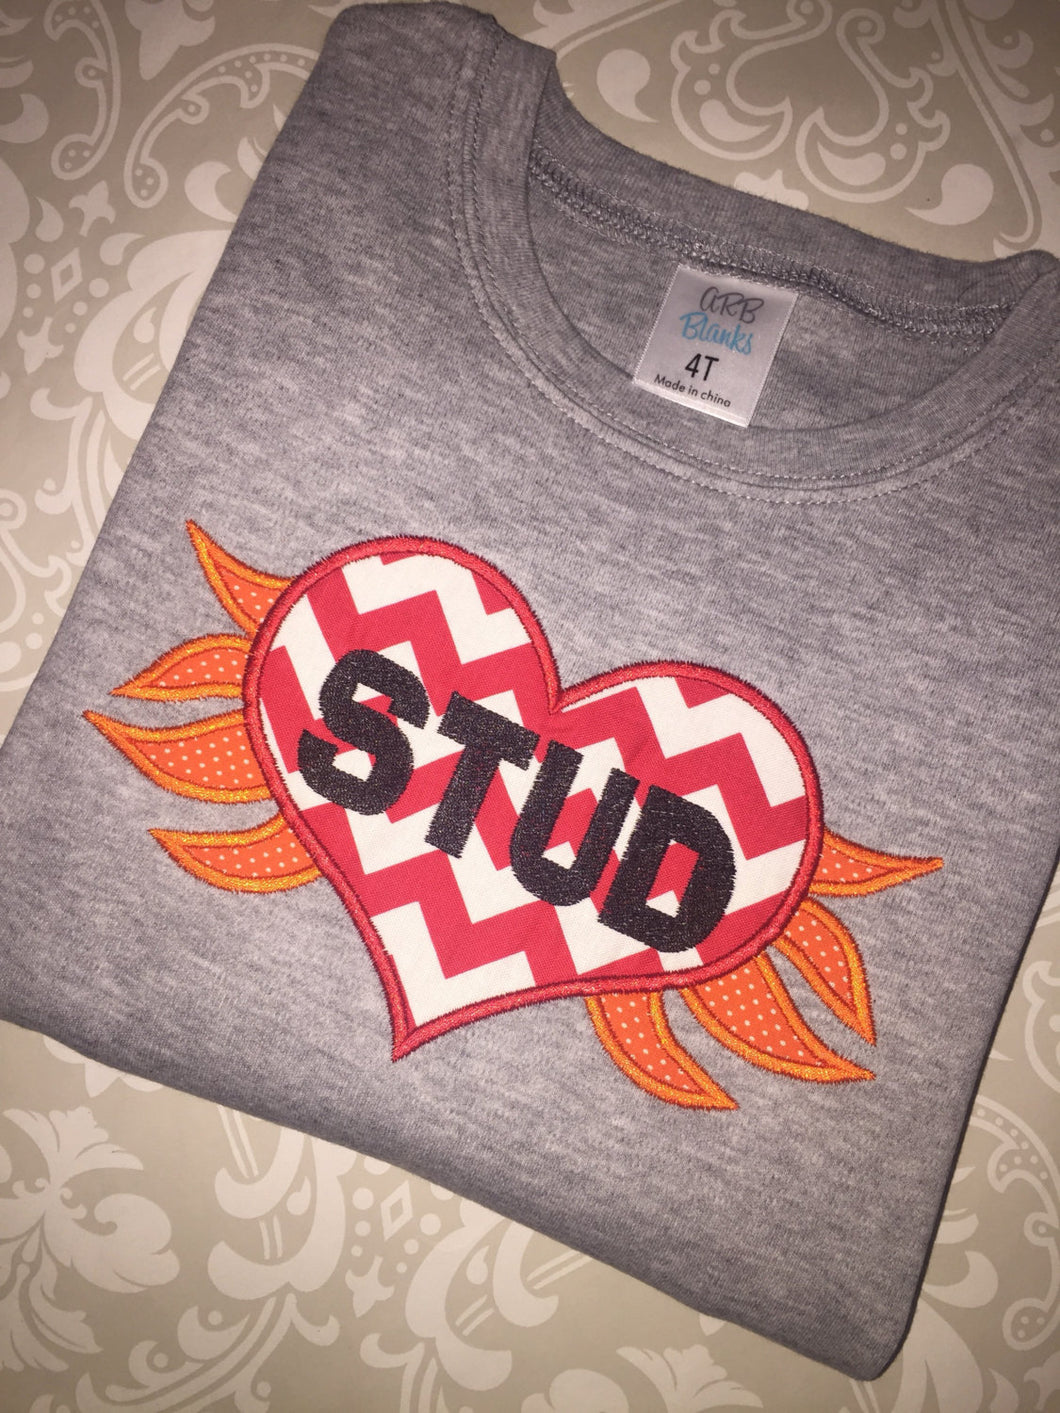 Stud Flaming Heart applique Valentine tee